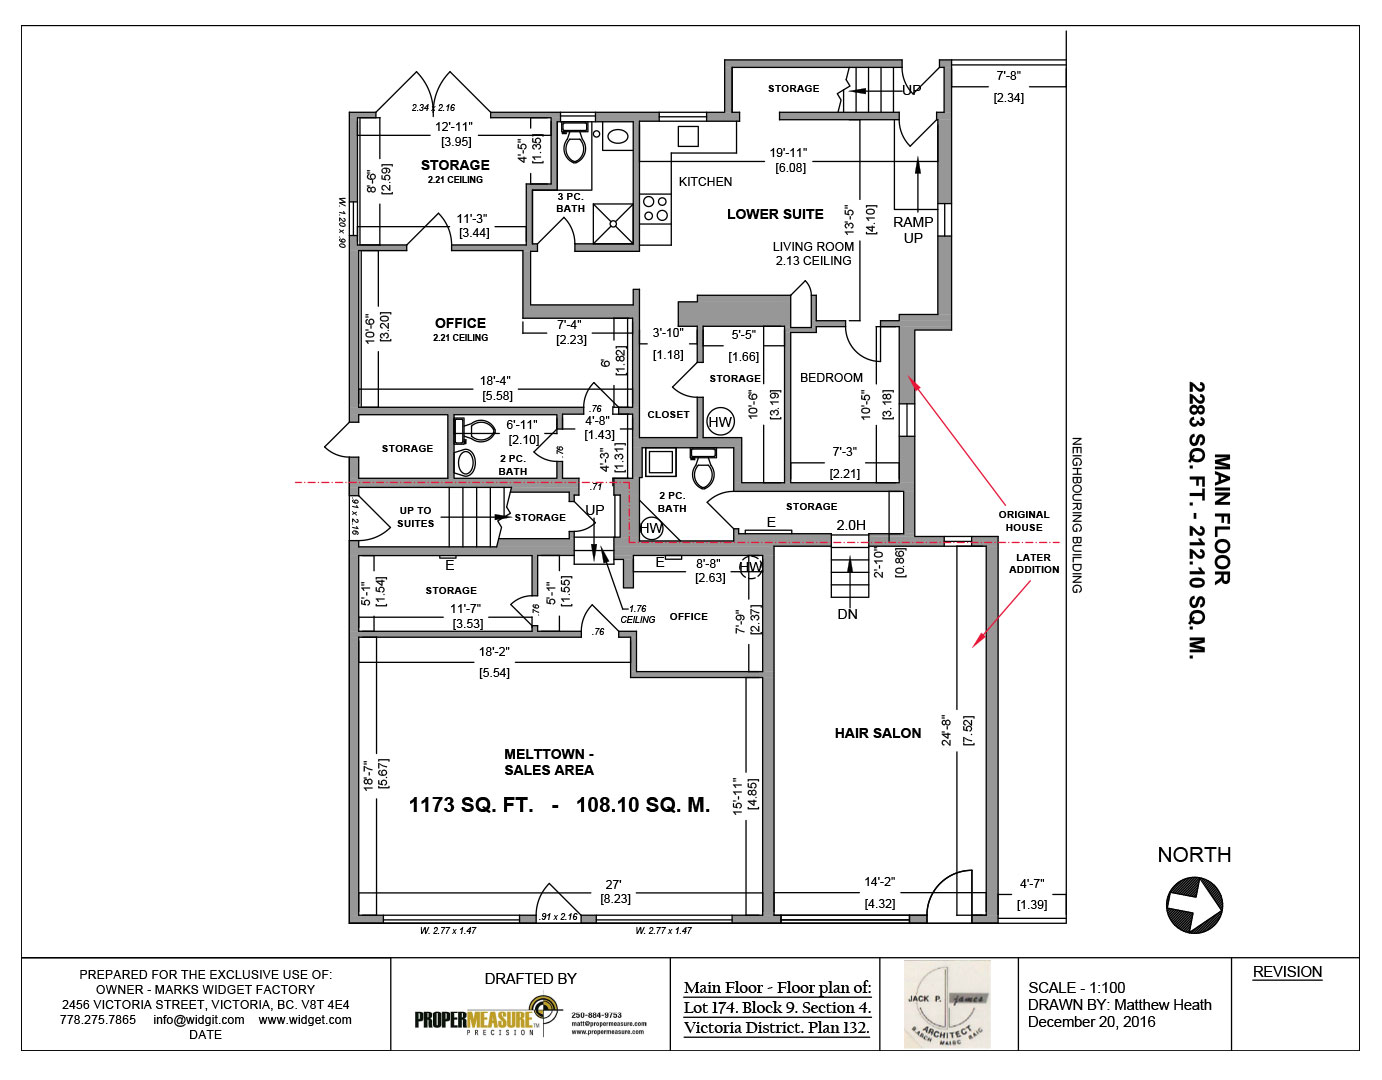 Drawing floor plans product positioning chart for Floor plans for real estate marketing